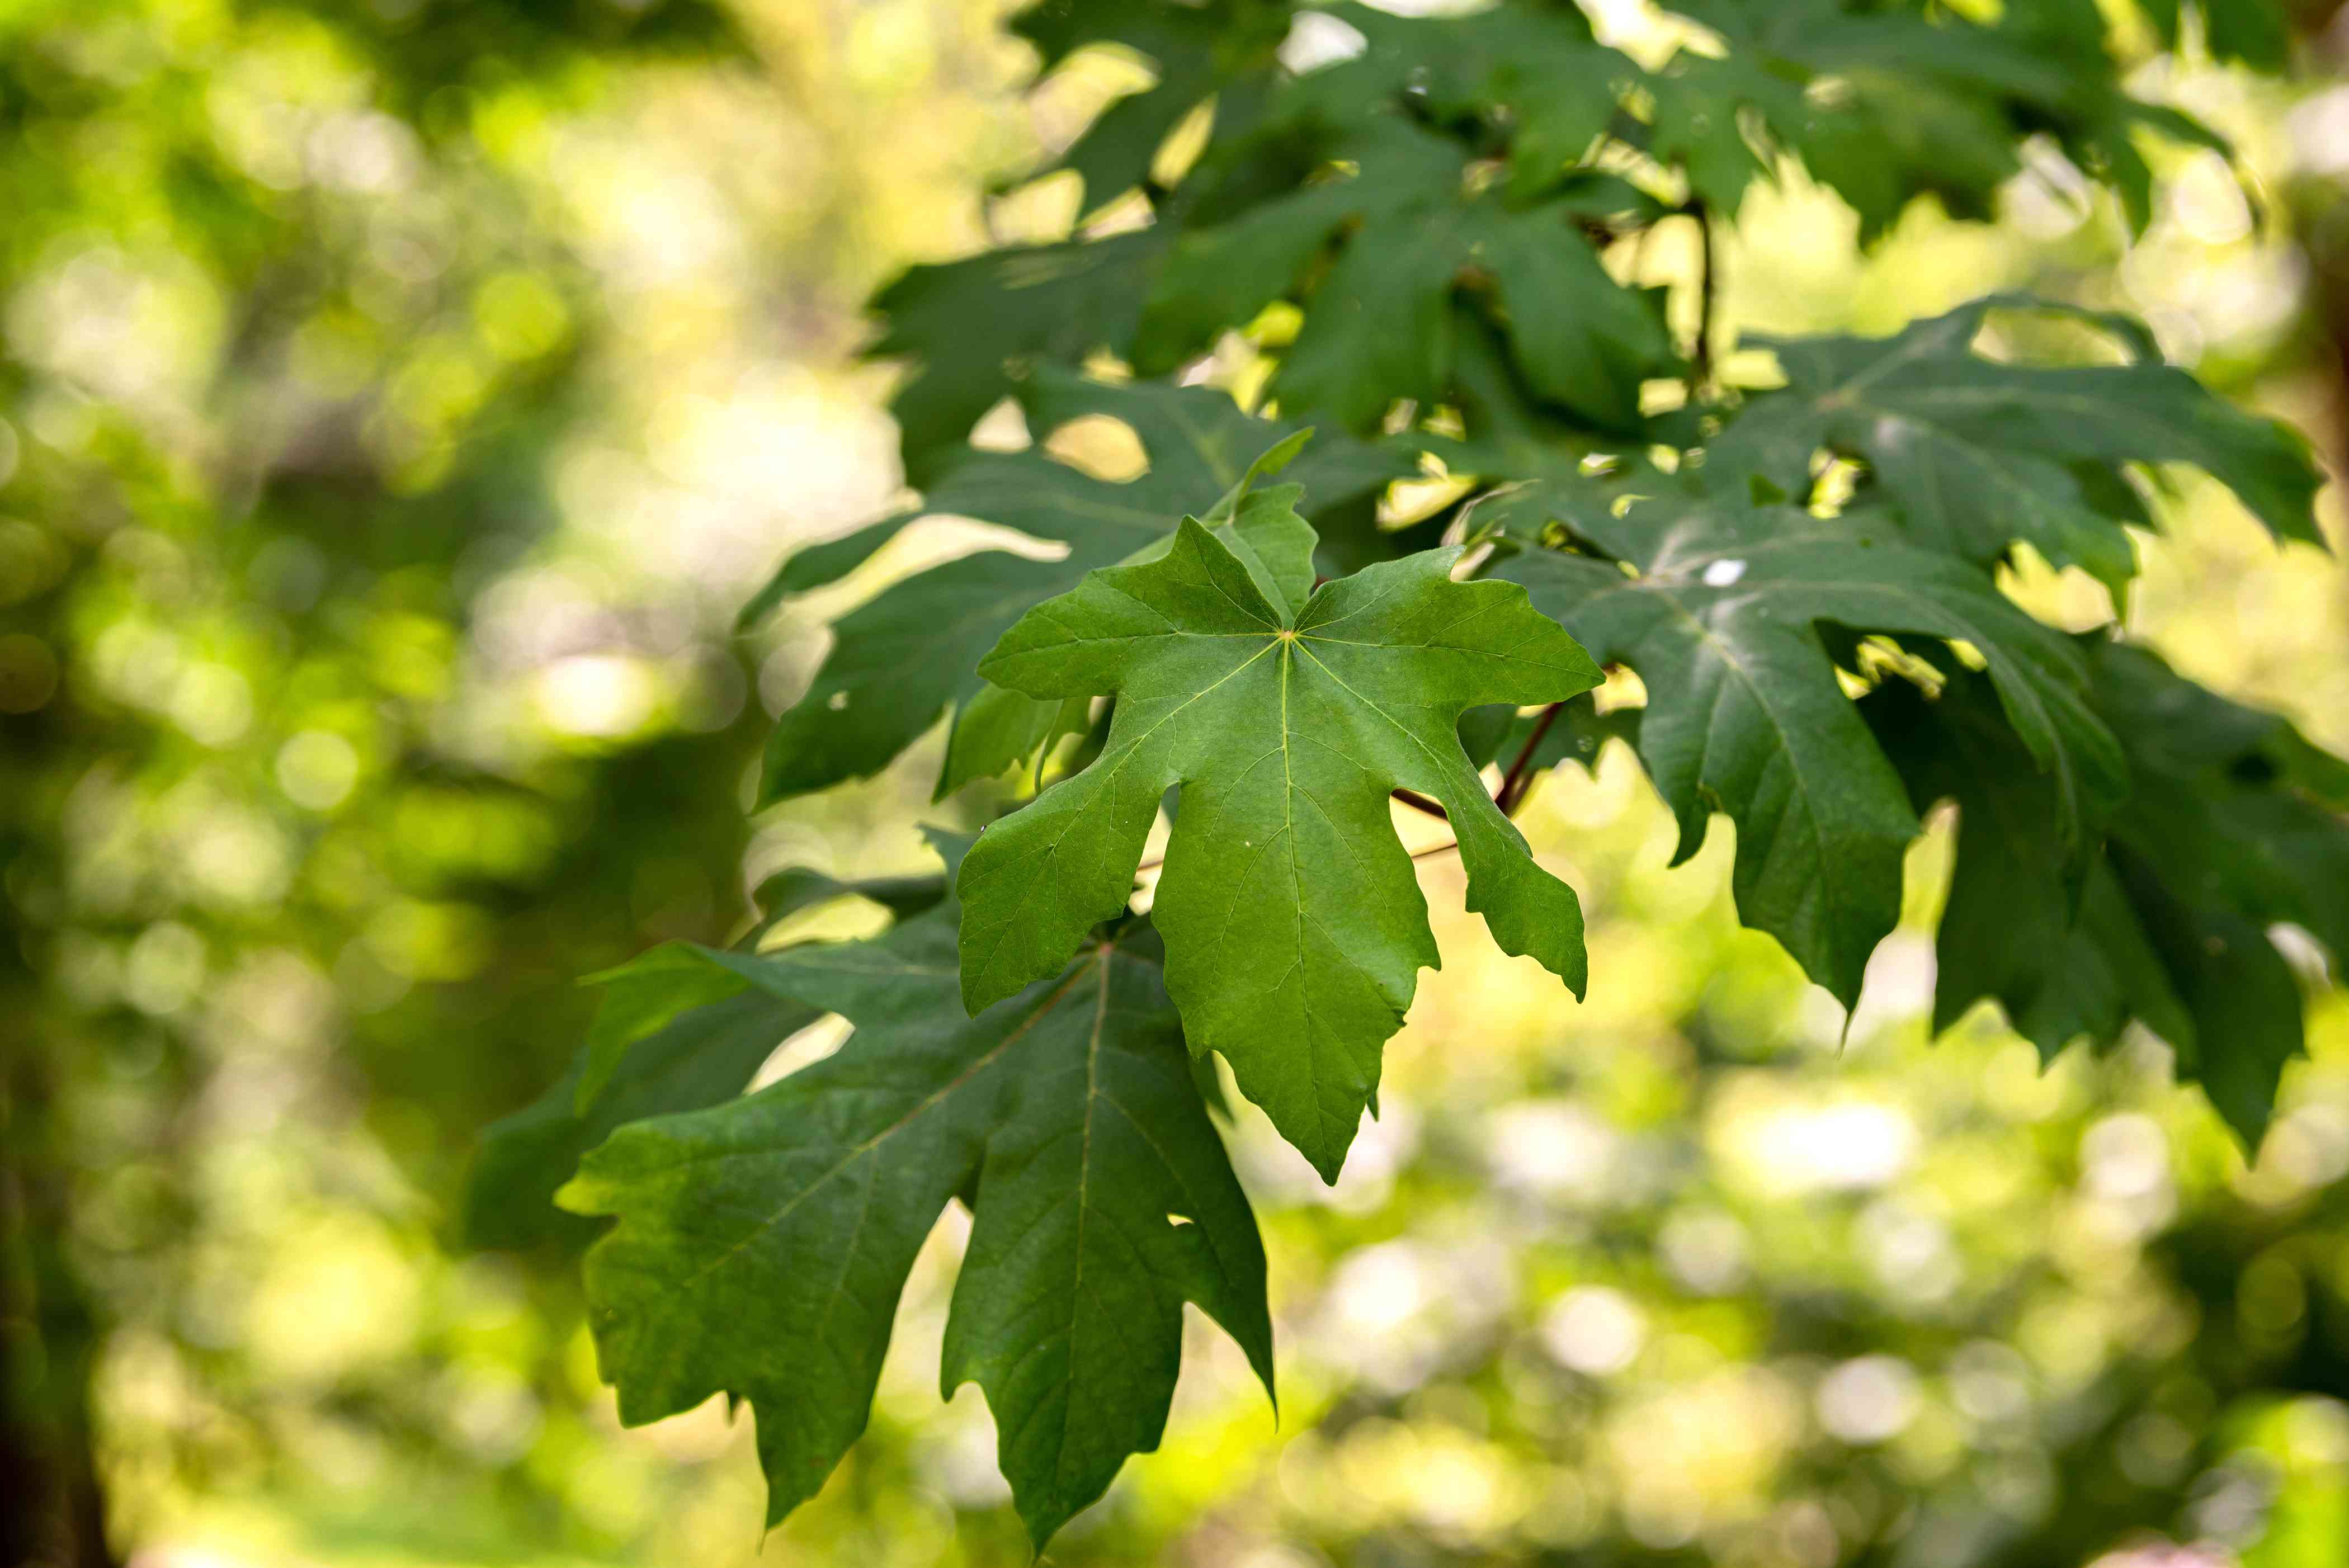 Big leaf maple tree branch with large palmate leaves closeup